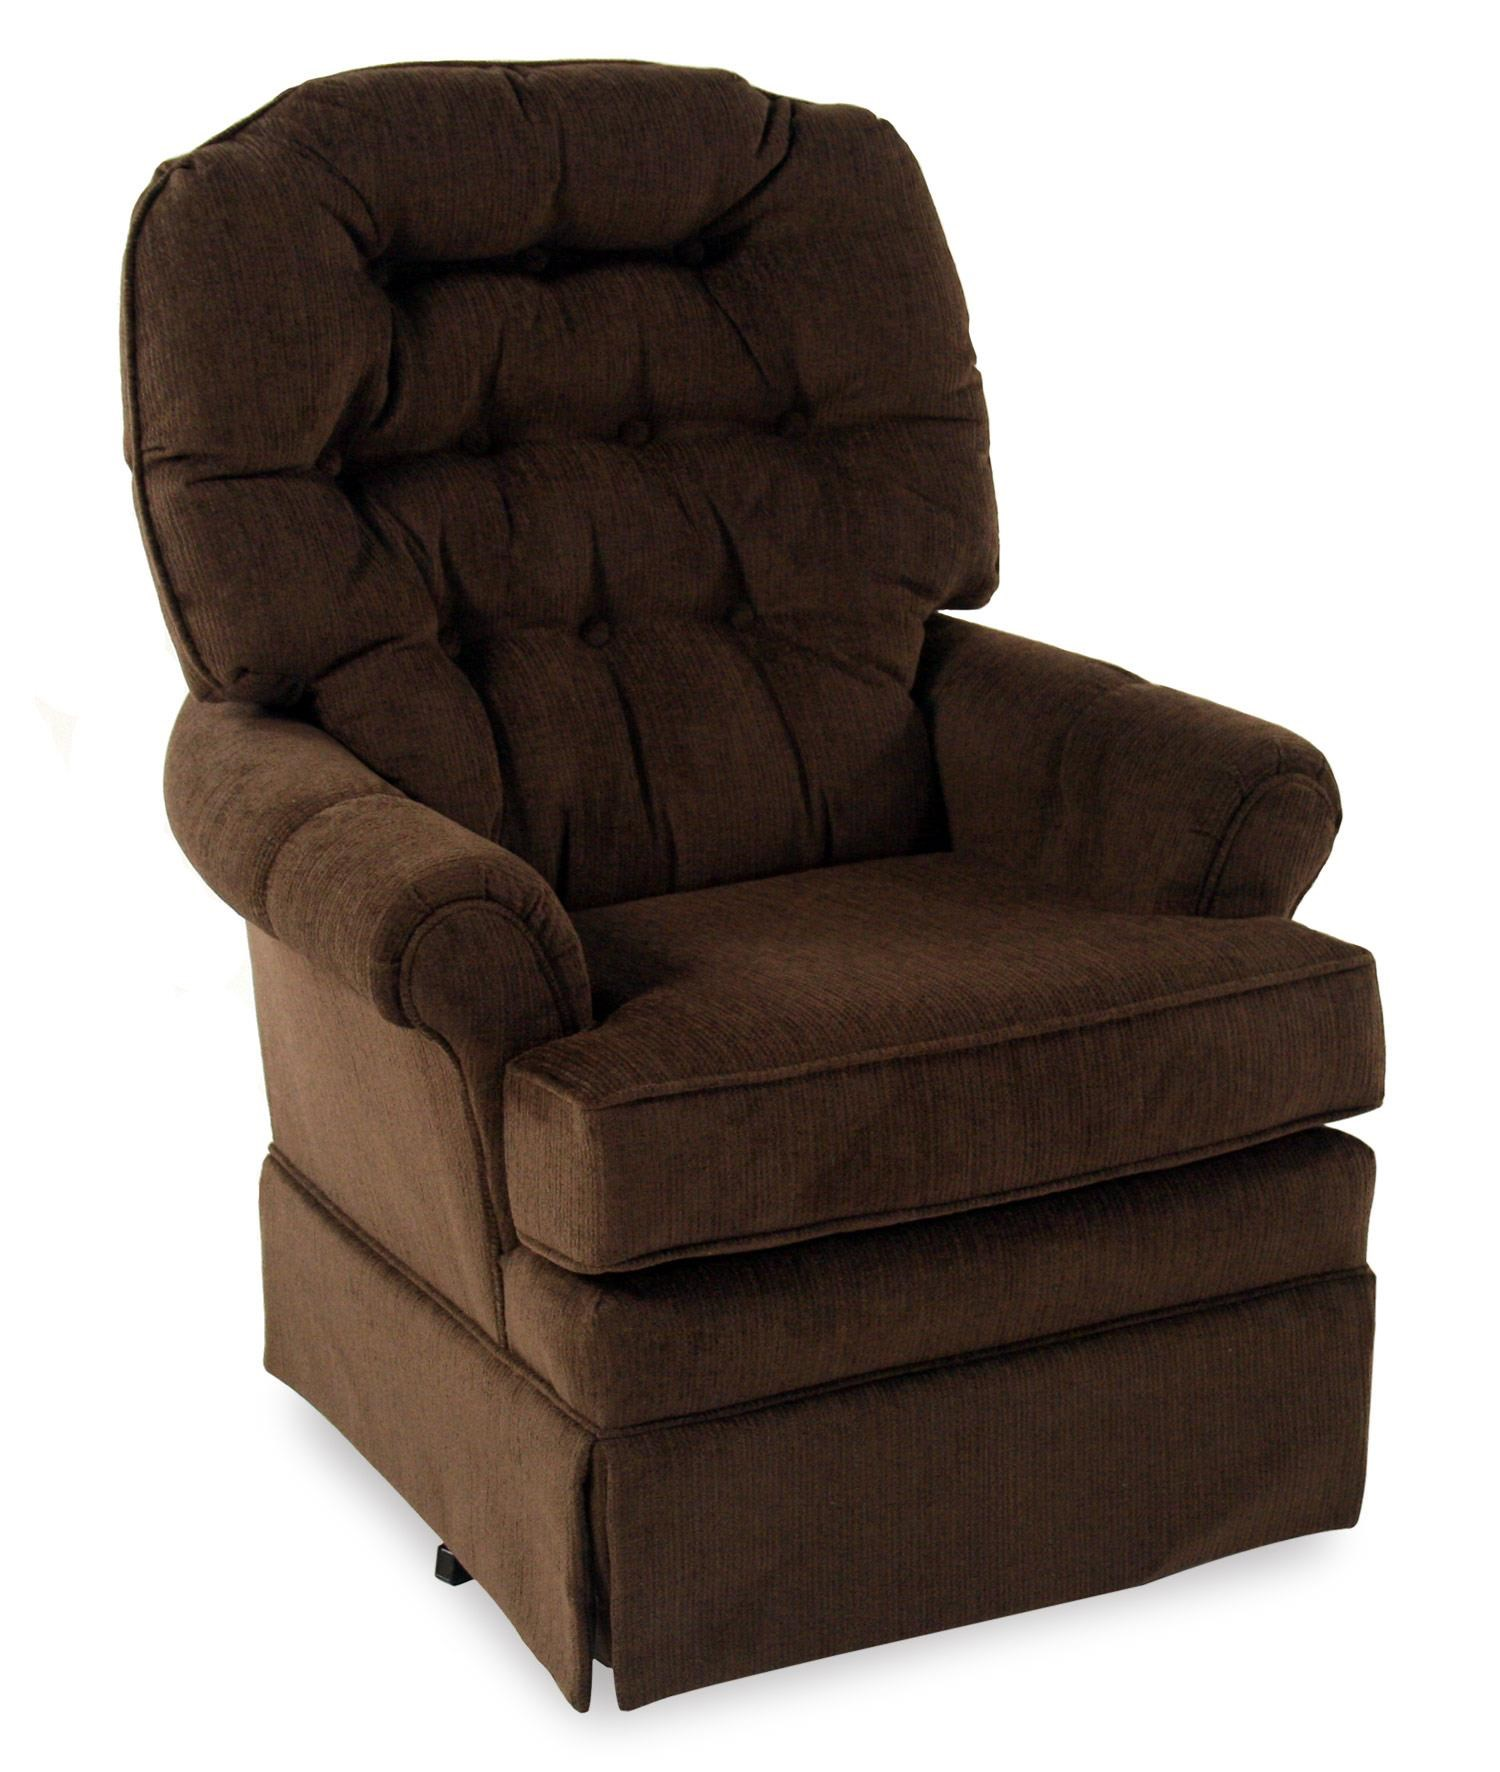 Swivel Rocking Chairs Chairs Sgr Swivel Rocking Chair By Best Home Furnishings At Rotmans